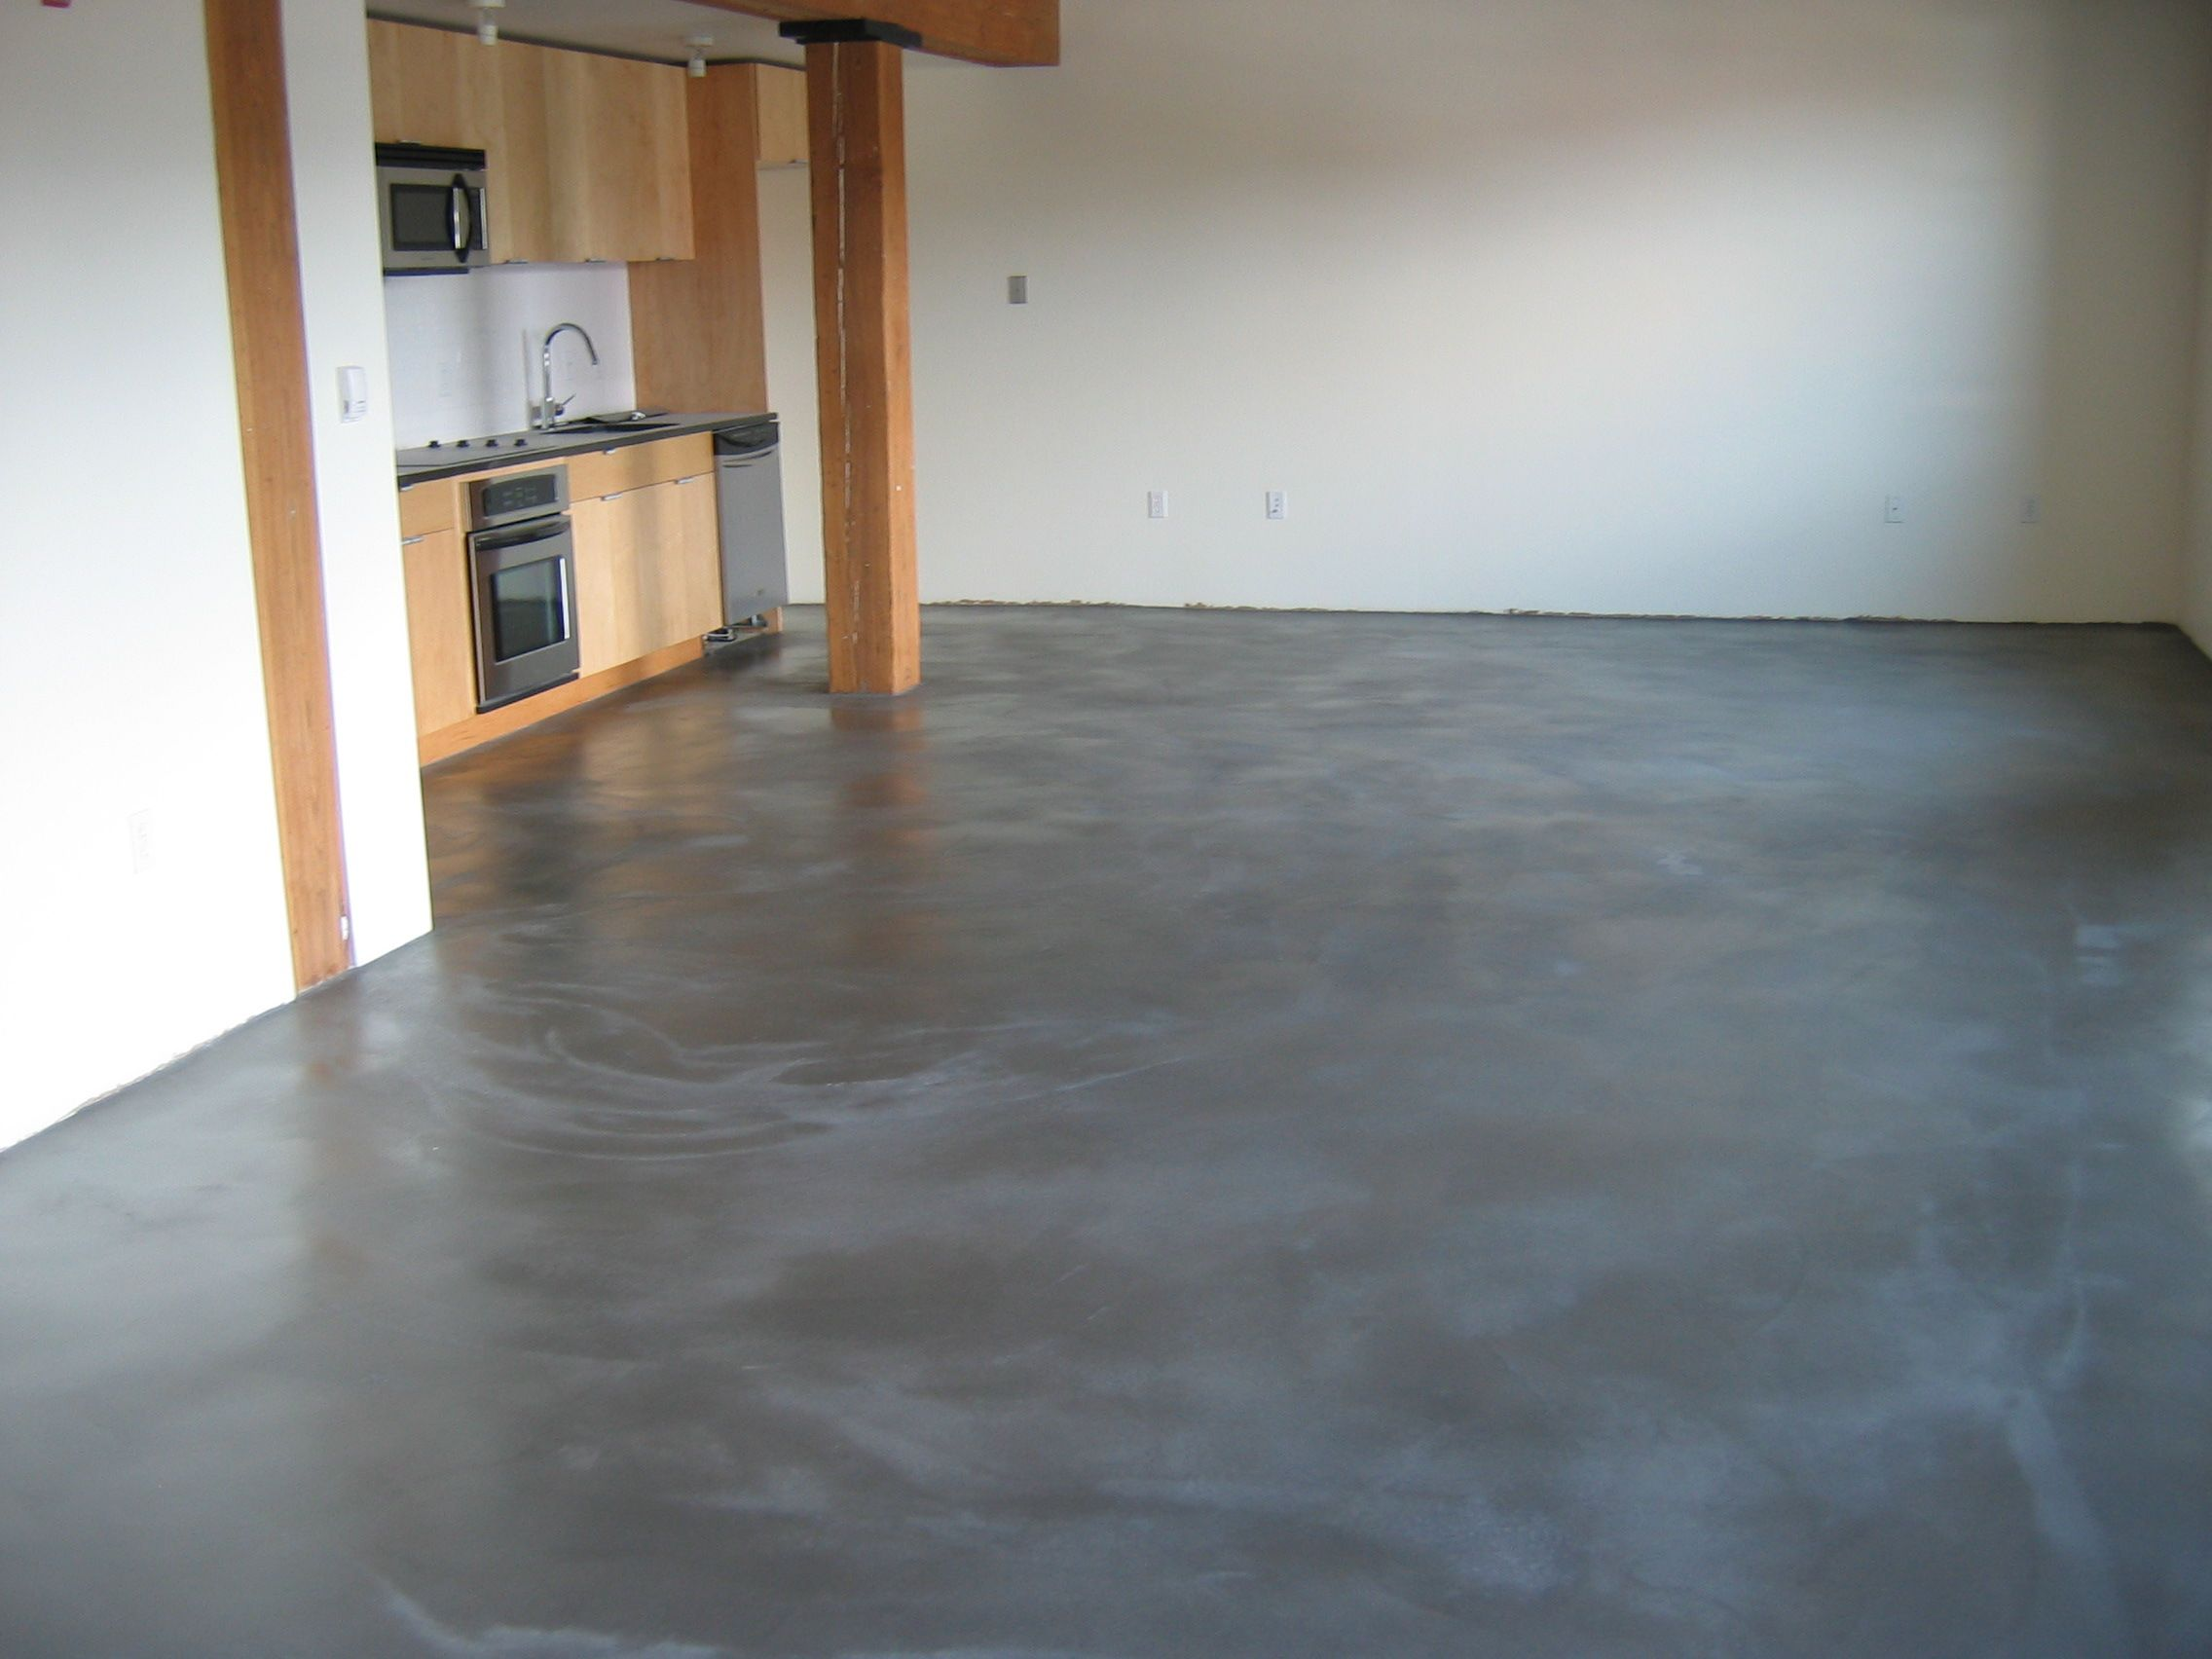 poured concrete floors